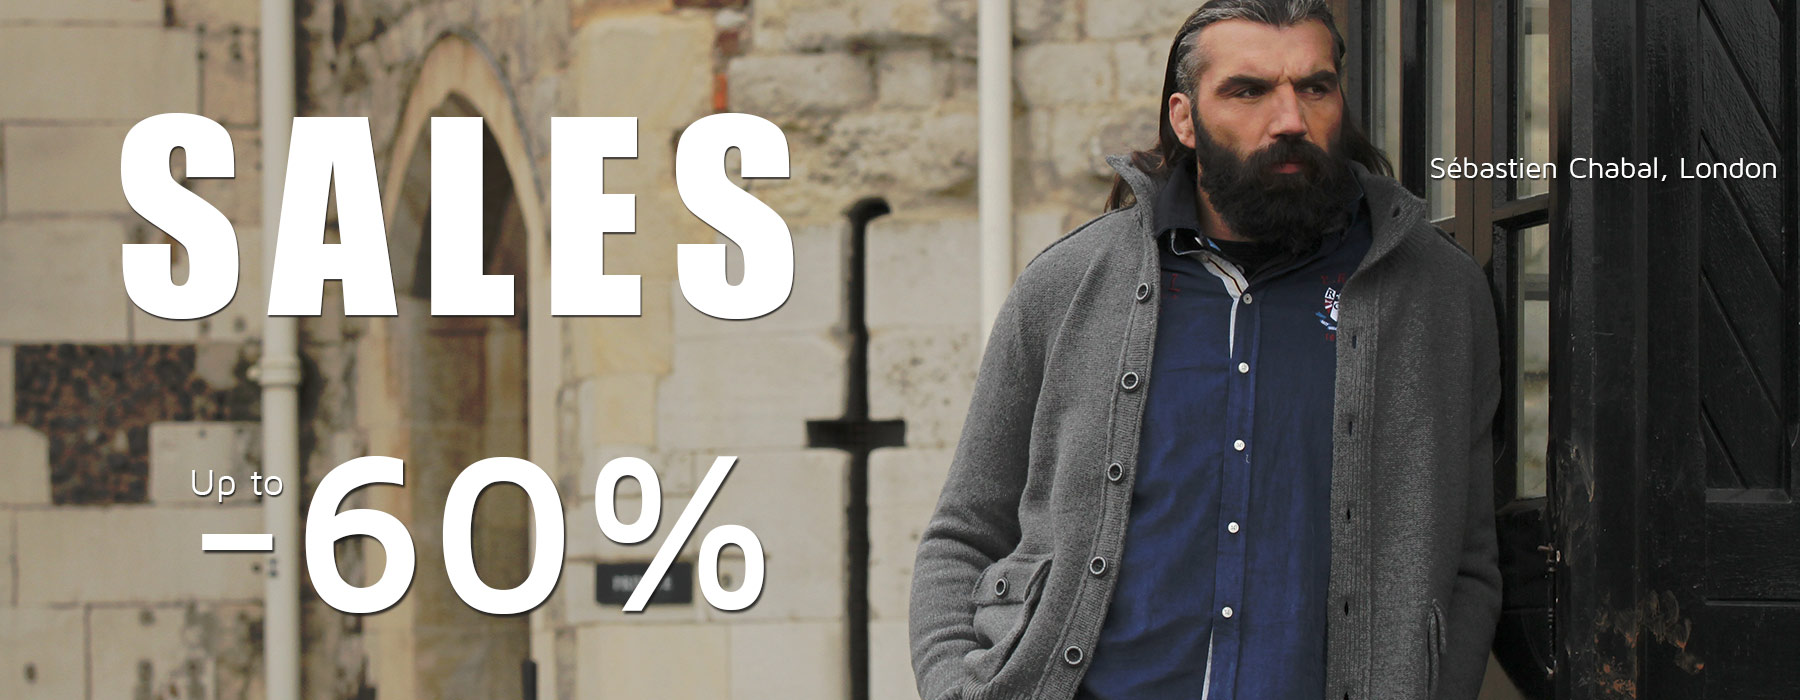 Ruckfiled and Sebastien Chabal SALES ! Up to -60% on all the e-store. Rugbywear for men big size XXL XXXL XXXXL